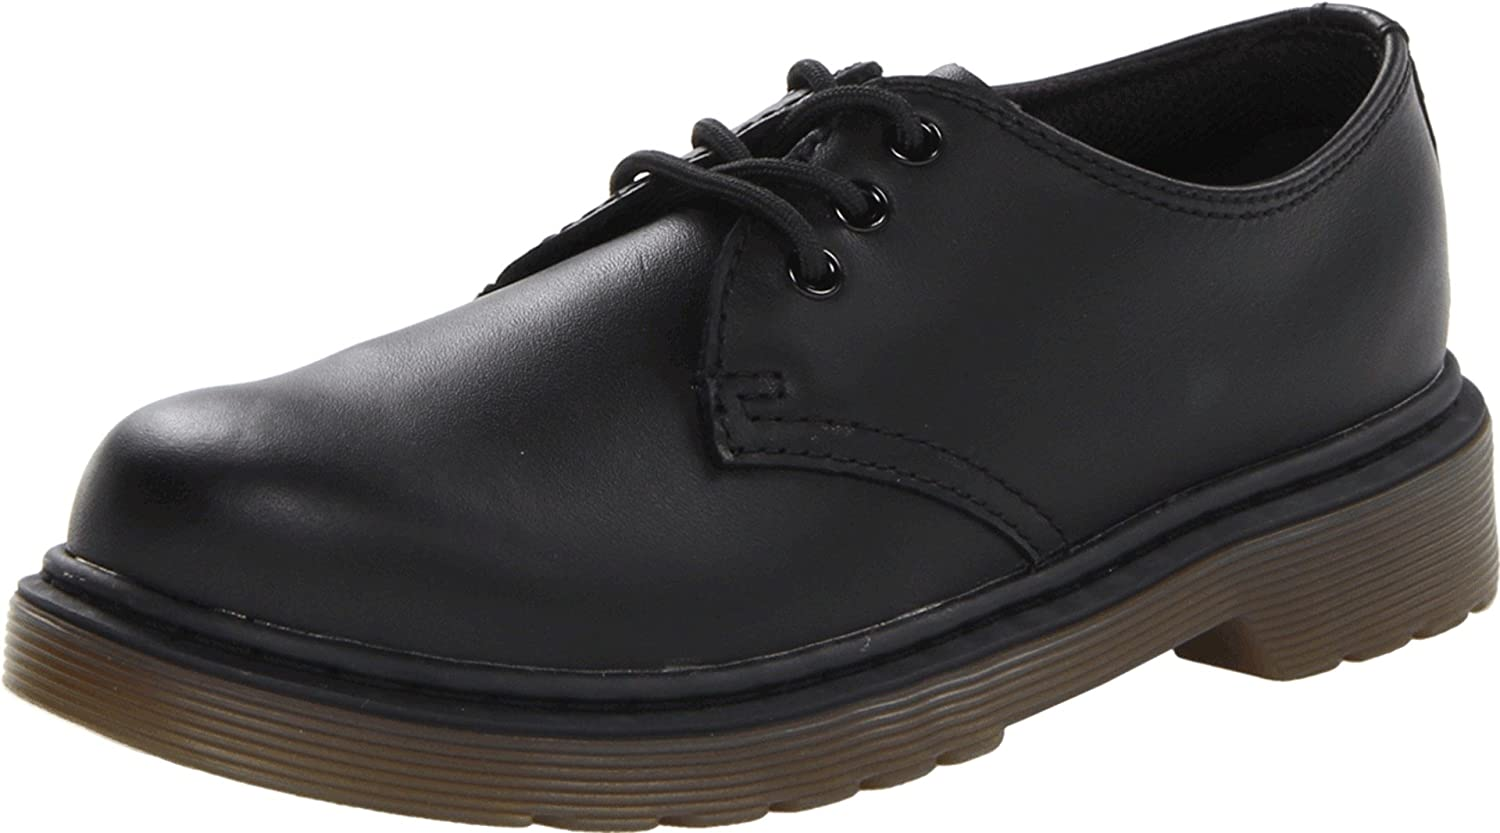 Dr. Martens Youth Everley 3-Eyelet Leather shoes